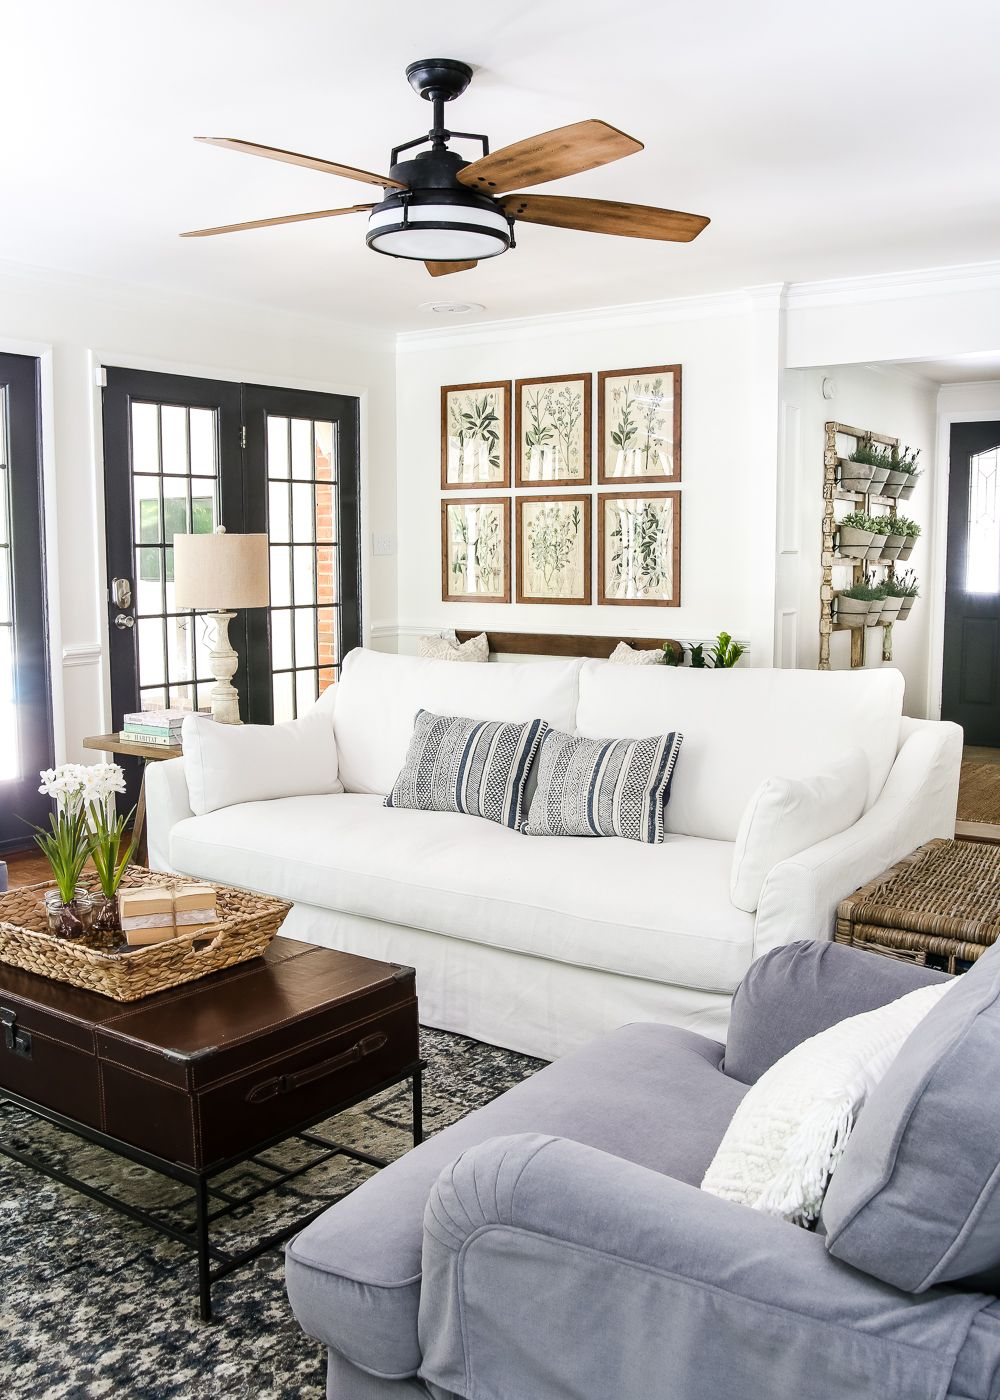 farmhouse decor farmhouse style living room decor split apartment style ideas modern Modern French Farmhouse Summer Home Tour | blesserhouse.com - A summer home  tour with modern French farmhouse style using inexpensive decorating tricks  and ...